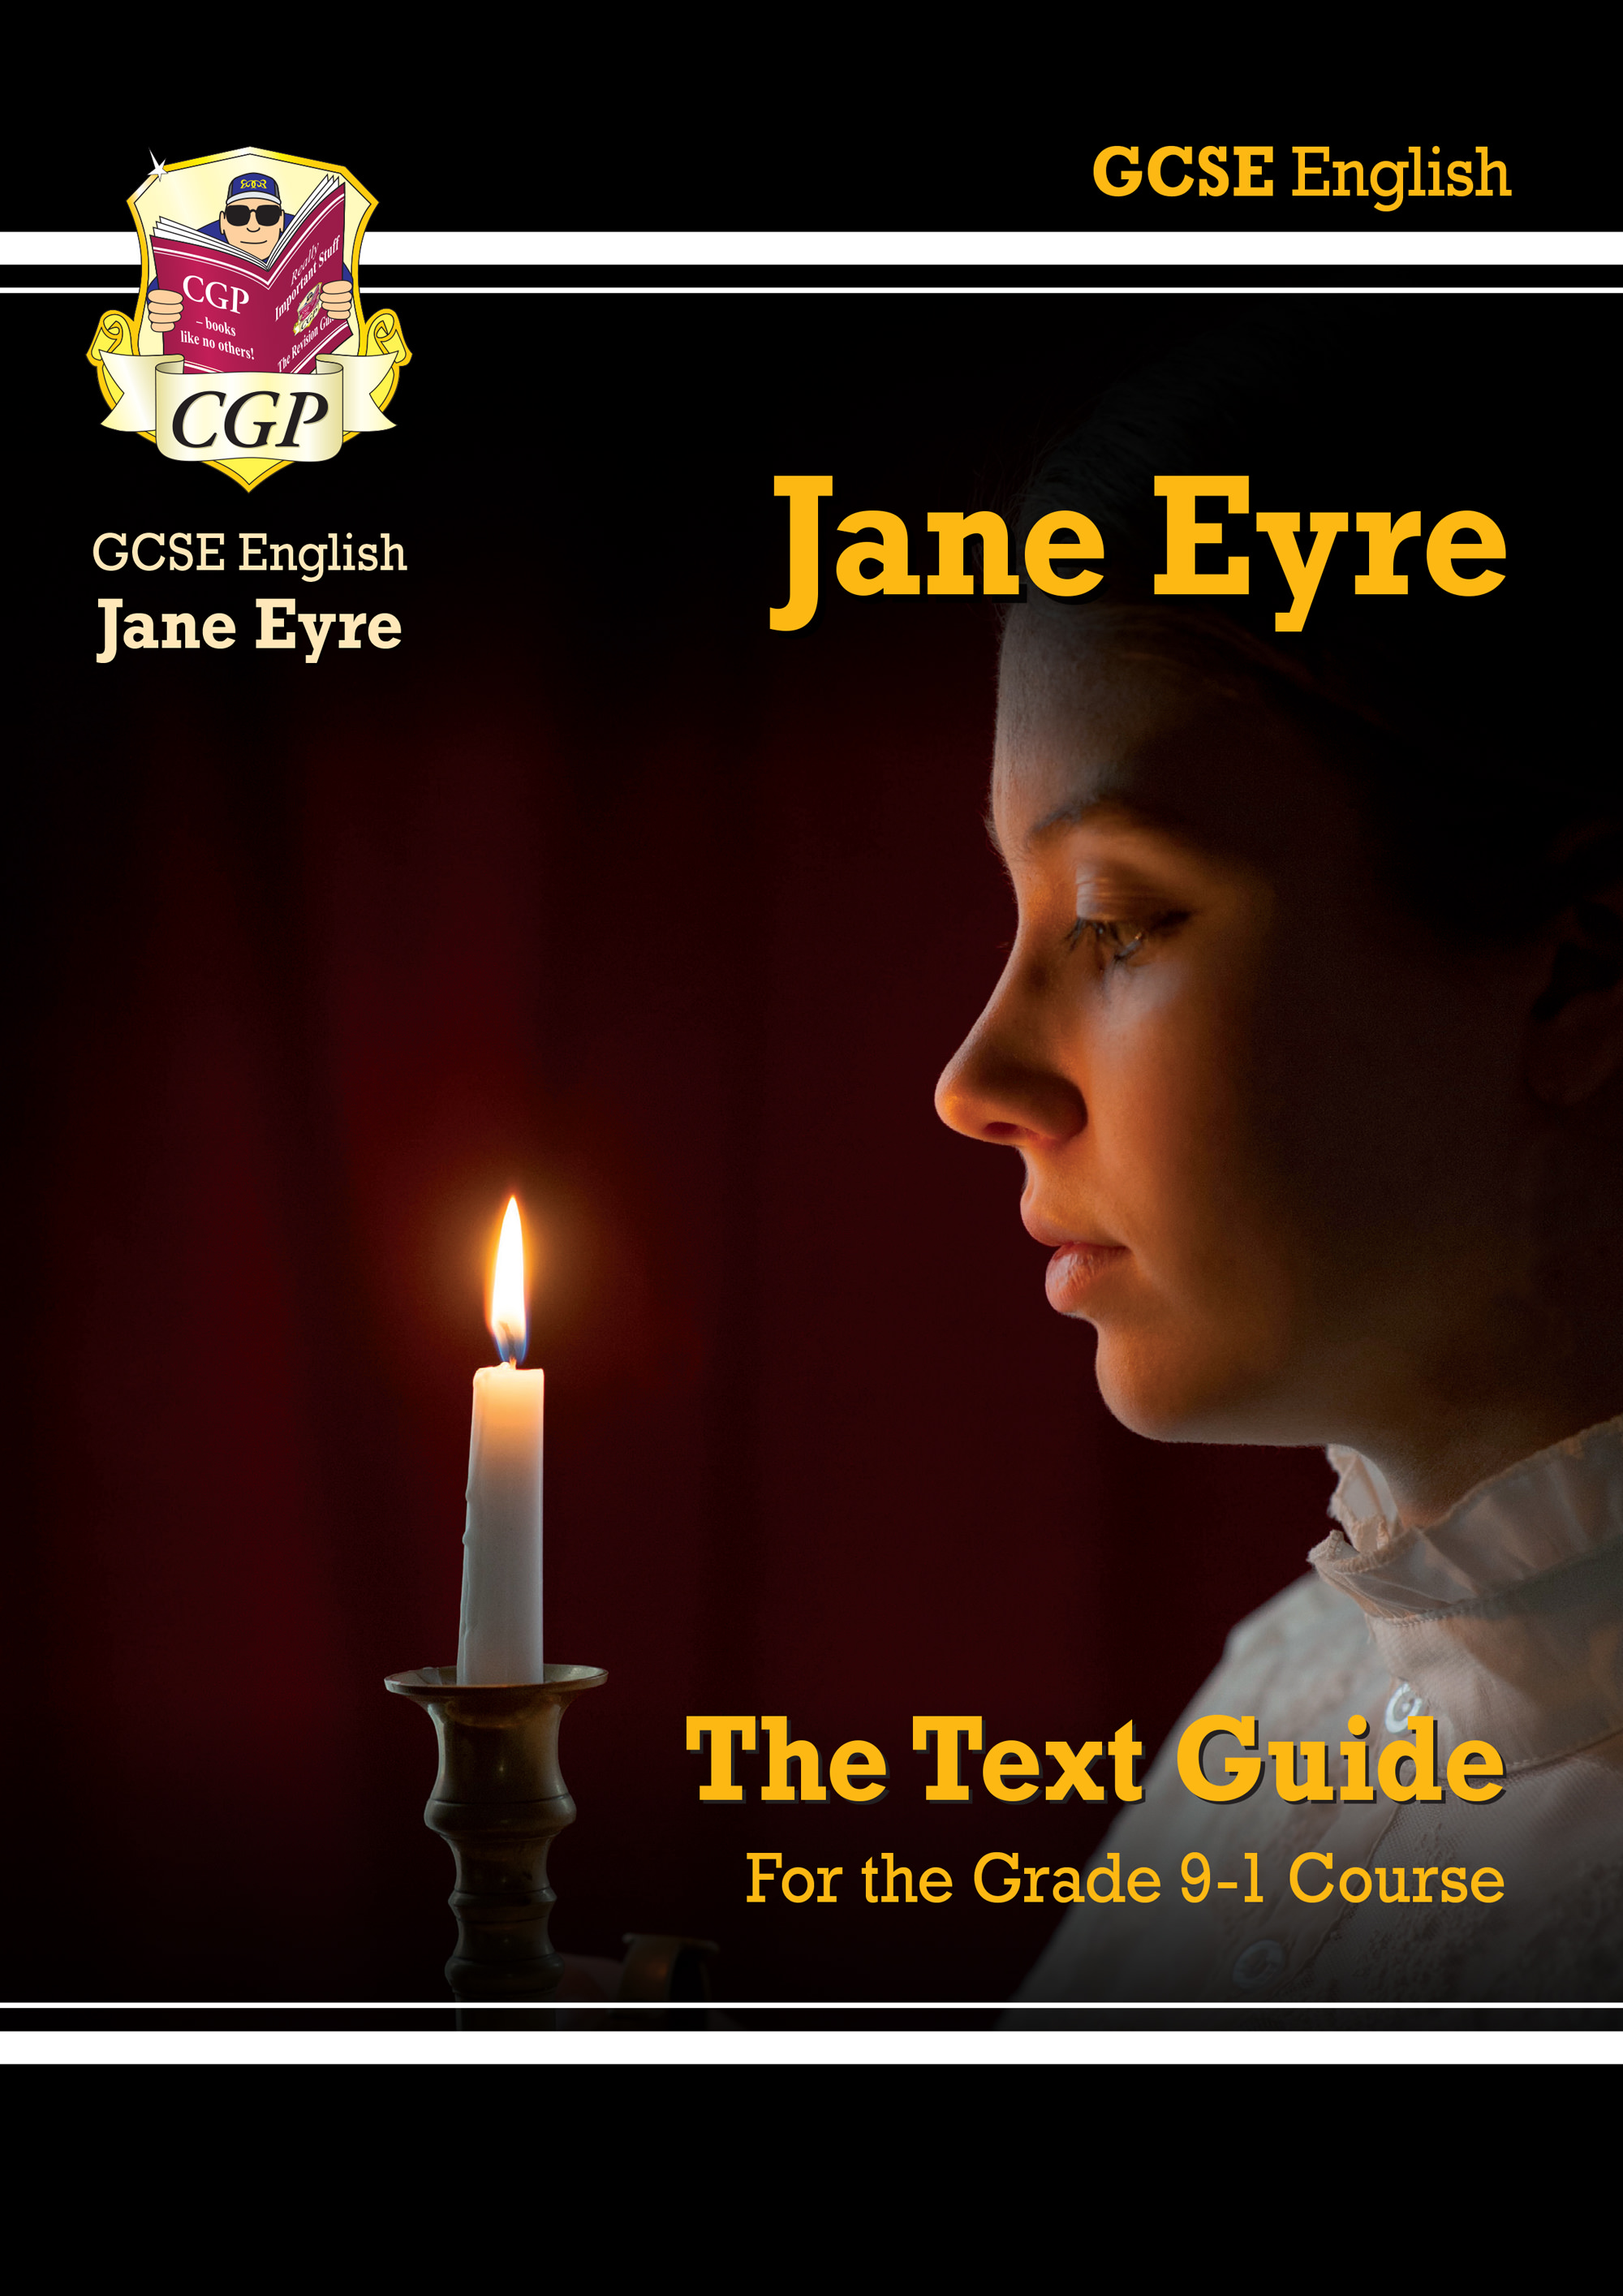 ETJE41 - Grade 9-1 GCSE English Text Guide - Jane Eyre